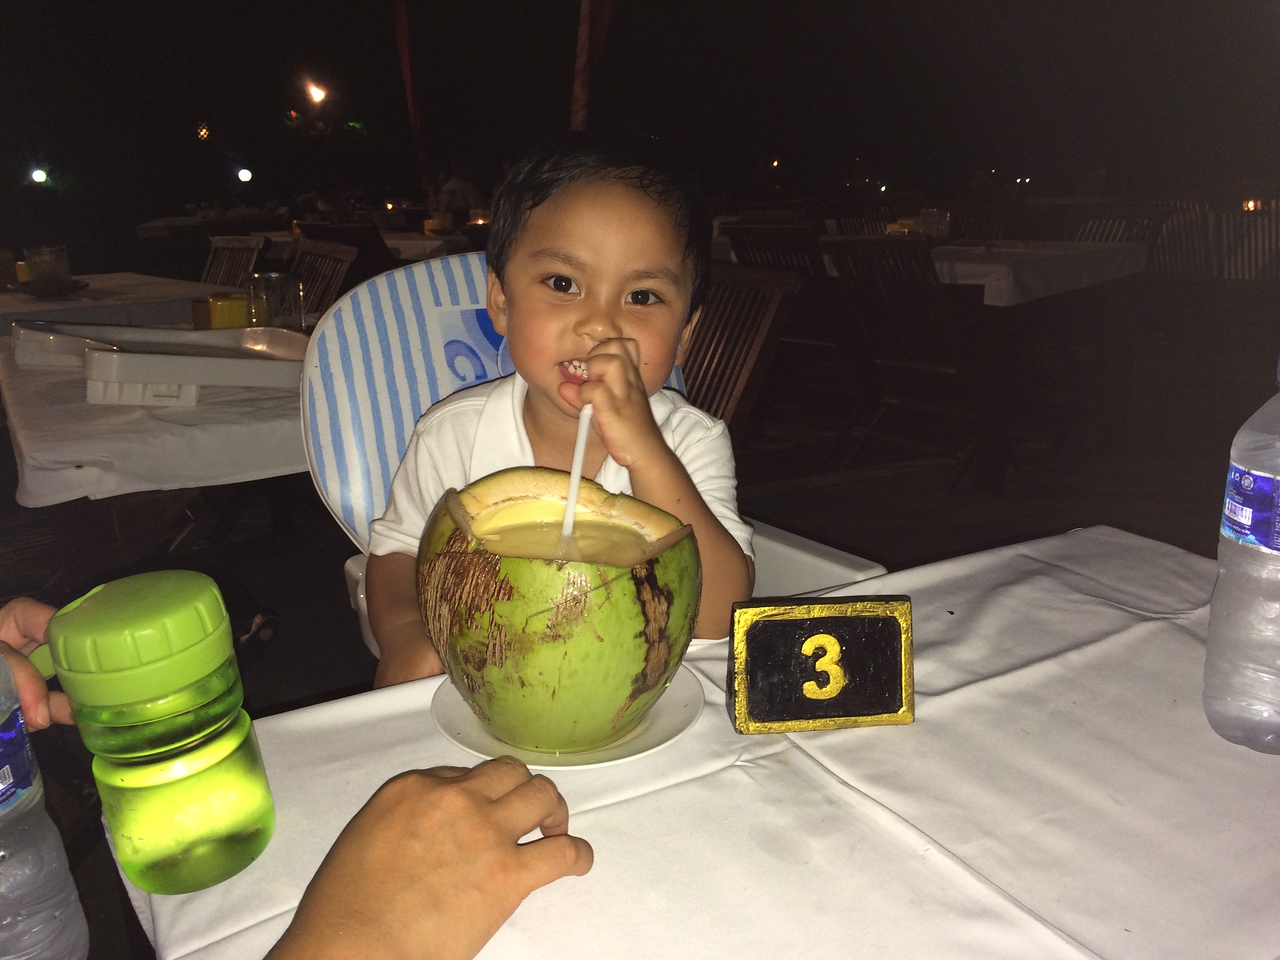 We happen to get table #3 on his third birthday! Yum fresh young coconut water.